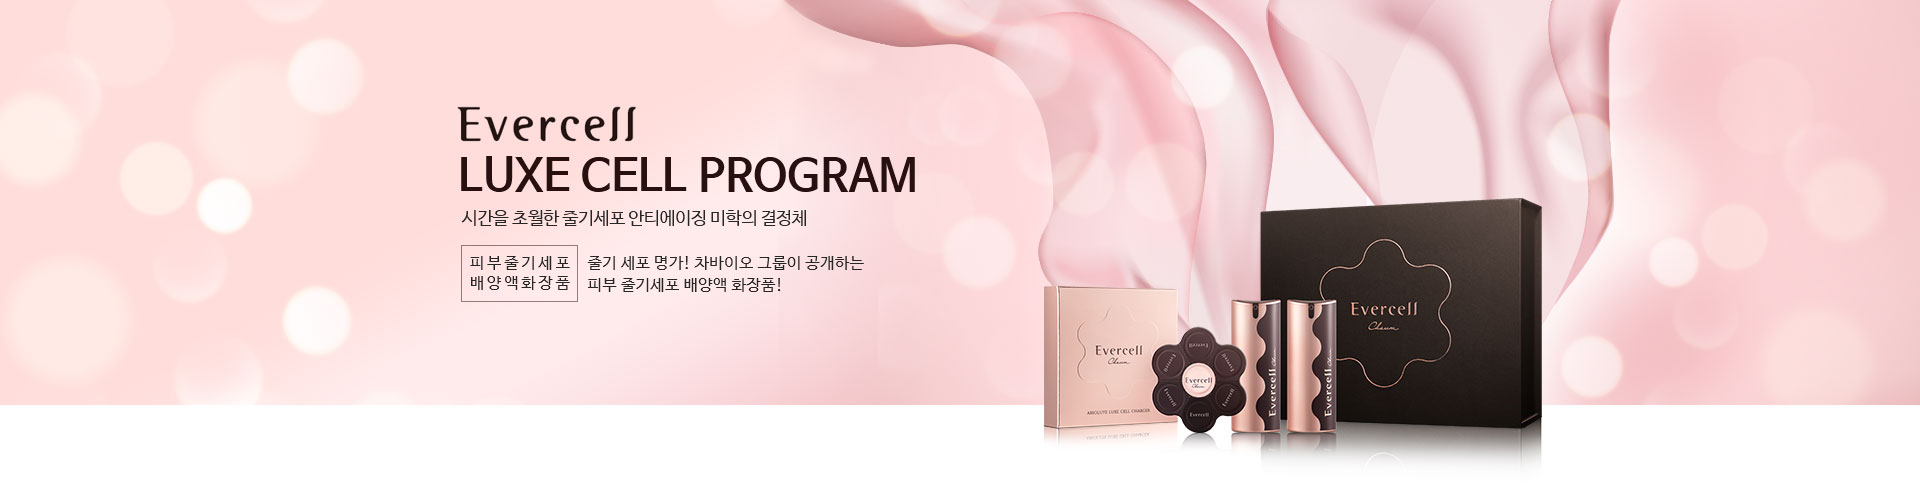 Evercell LUXE CELL PROGRAM